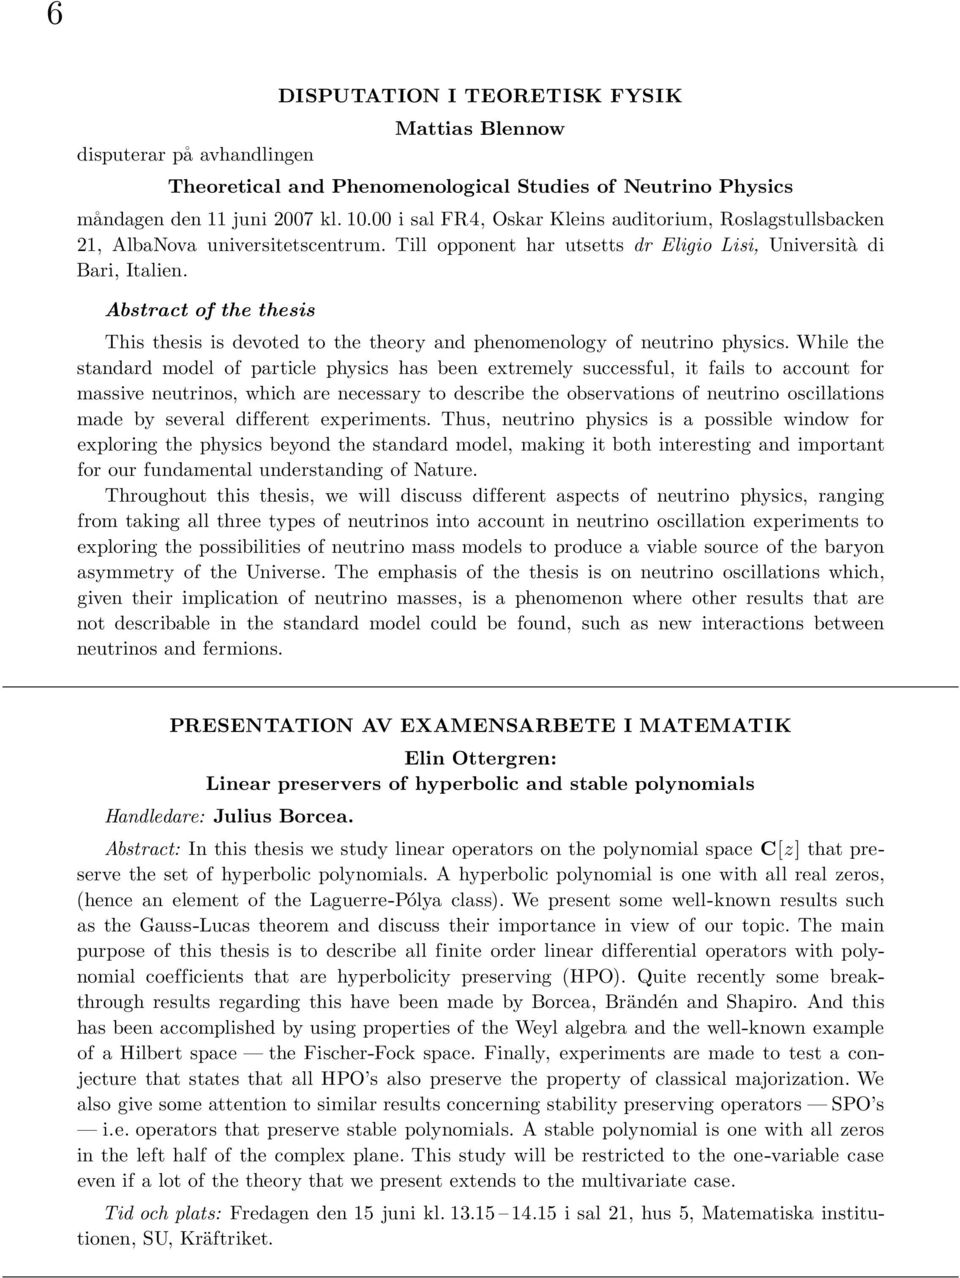 Abstract of the thesis This thesis is devoted to the theory and phenomenology of neutrino physics.